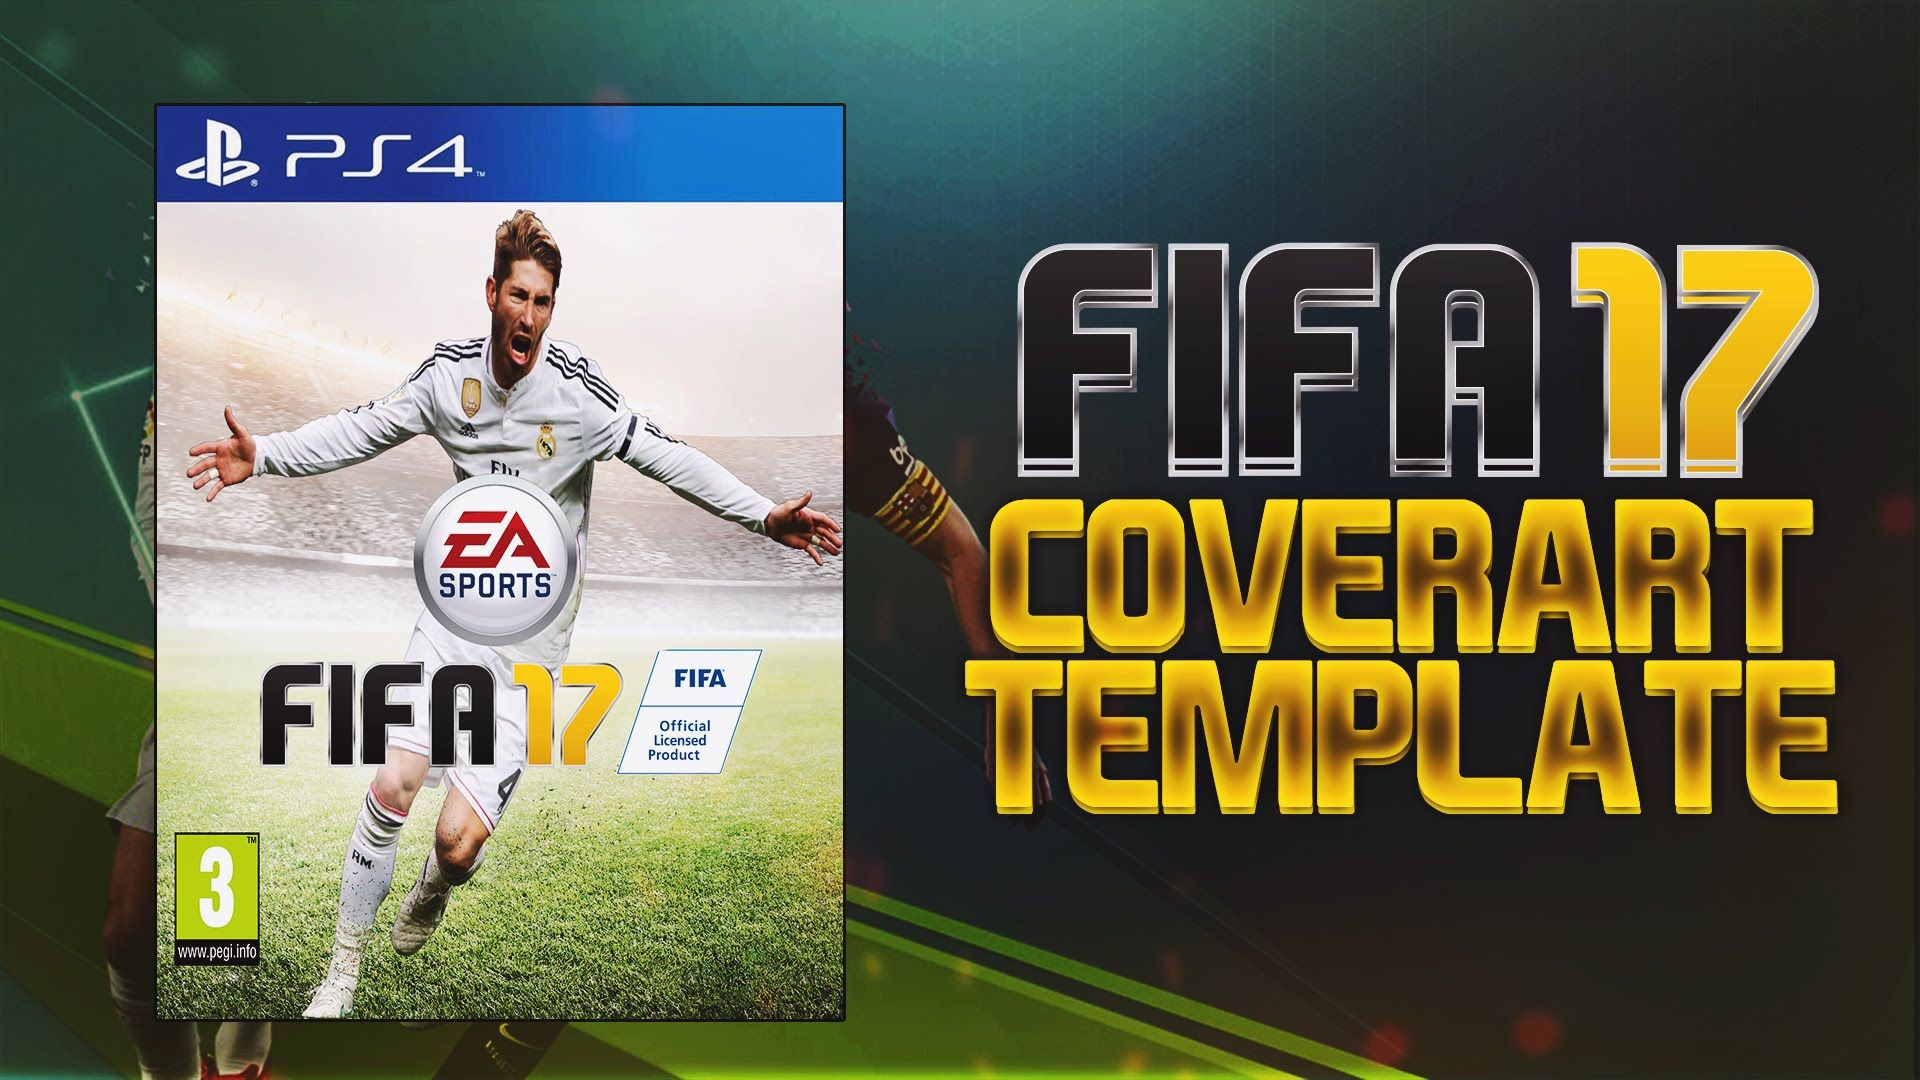 Free Gfx Fifa 17 Cover Art Template Cheap Fifa 17 Coins On Mobilga Com Http Www Mobilga Com Cheap Fifa 17 Coins Html The Largest Mobile Pc Games Selling W